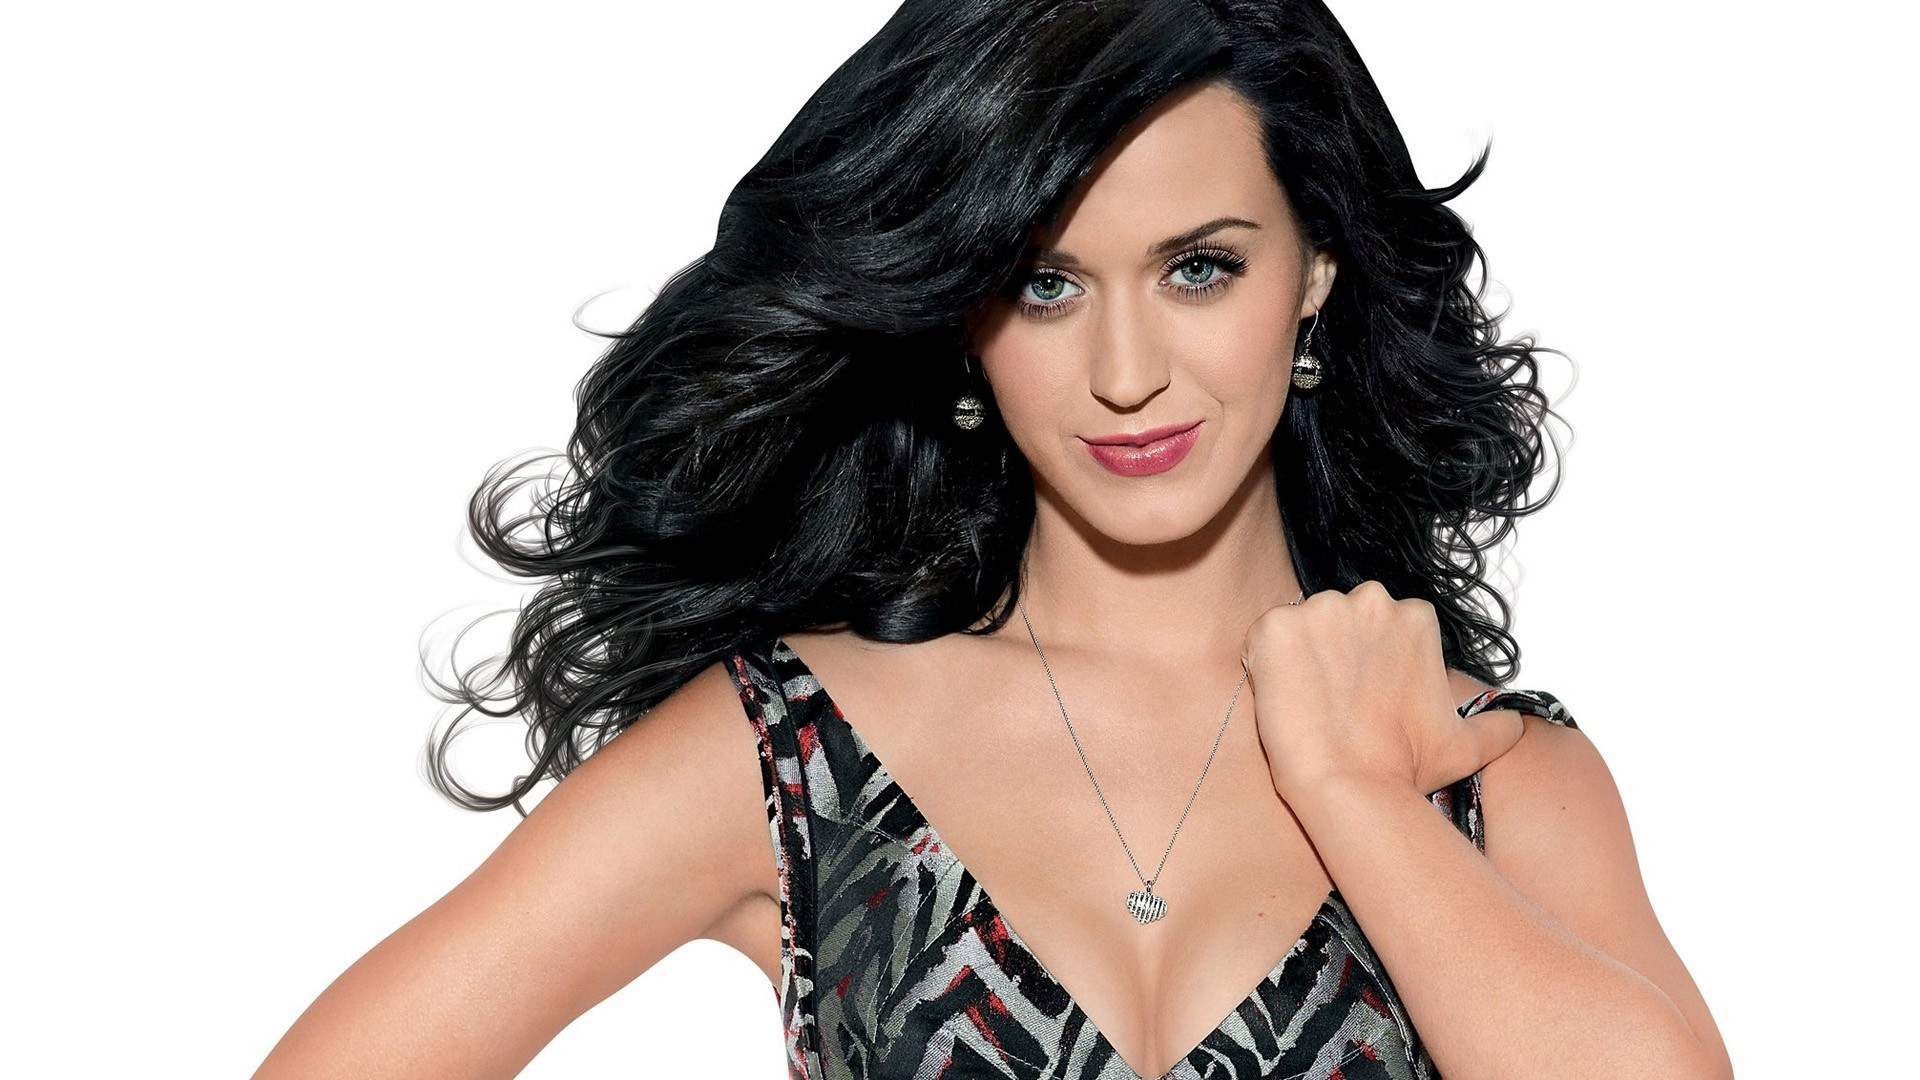 Katy Perry Wallpaper A3